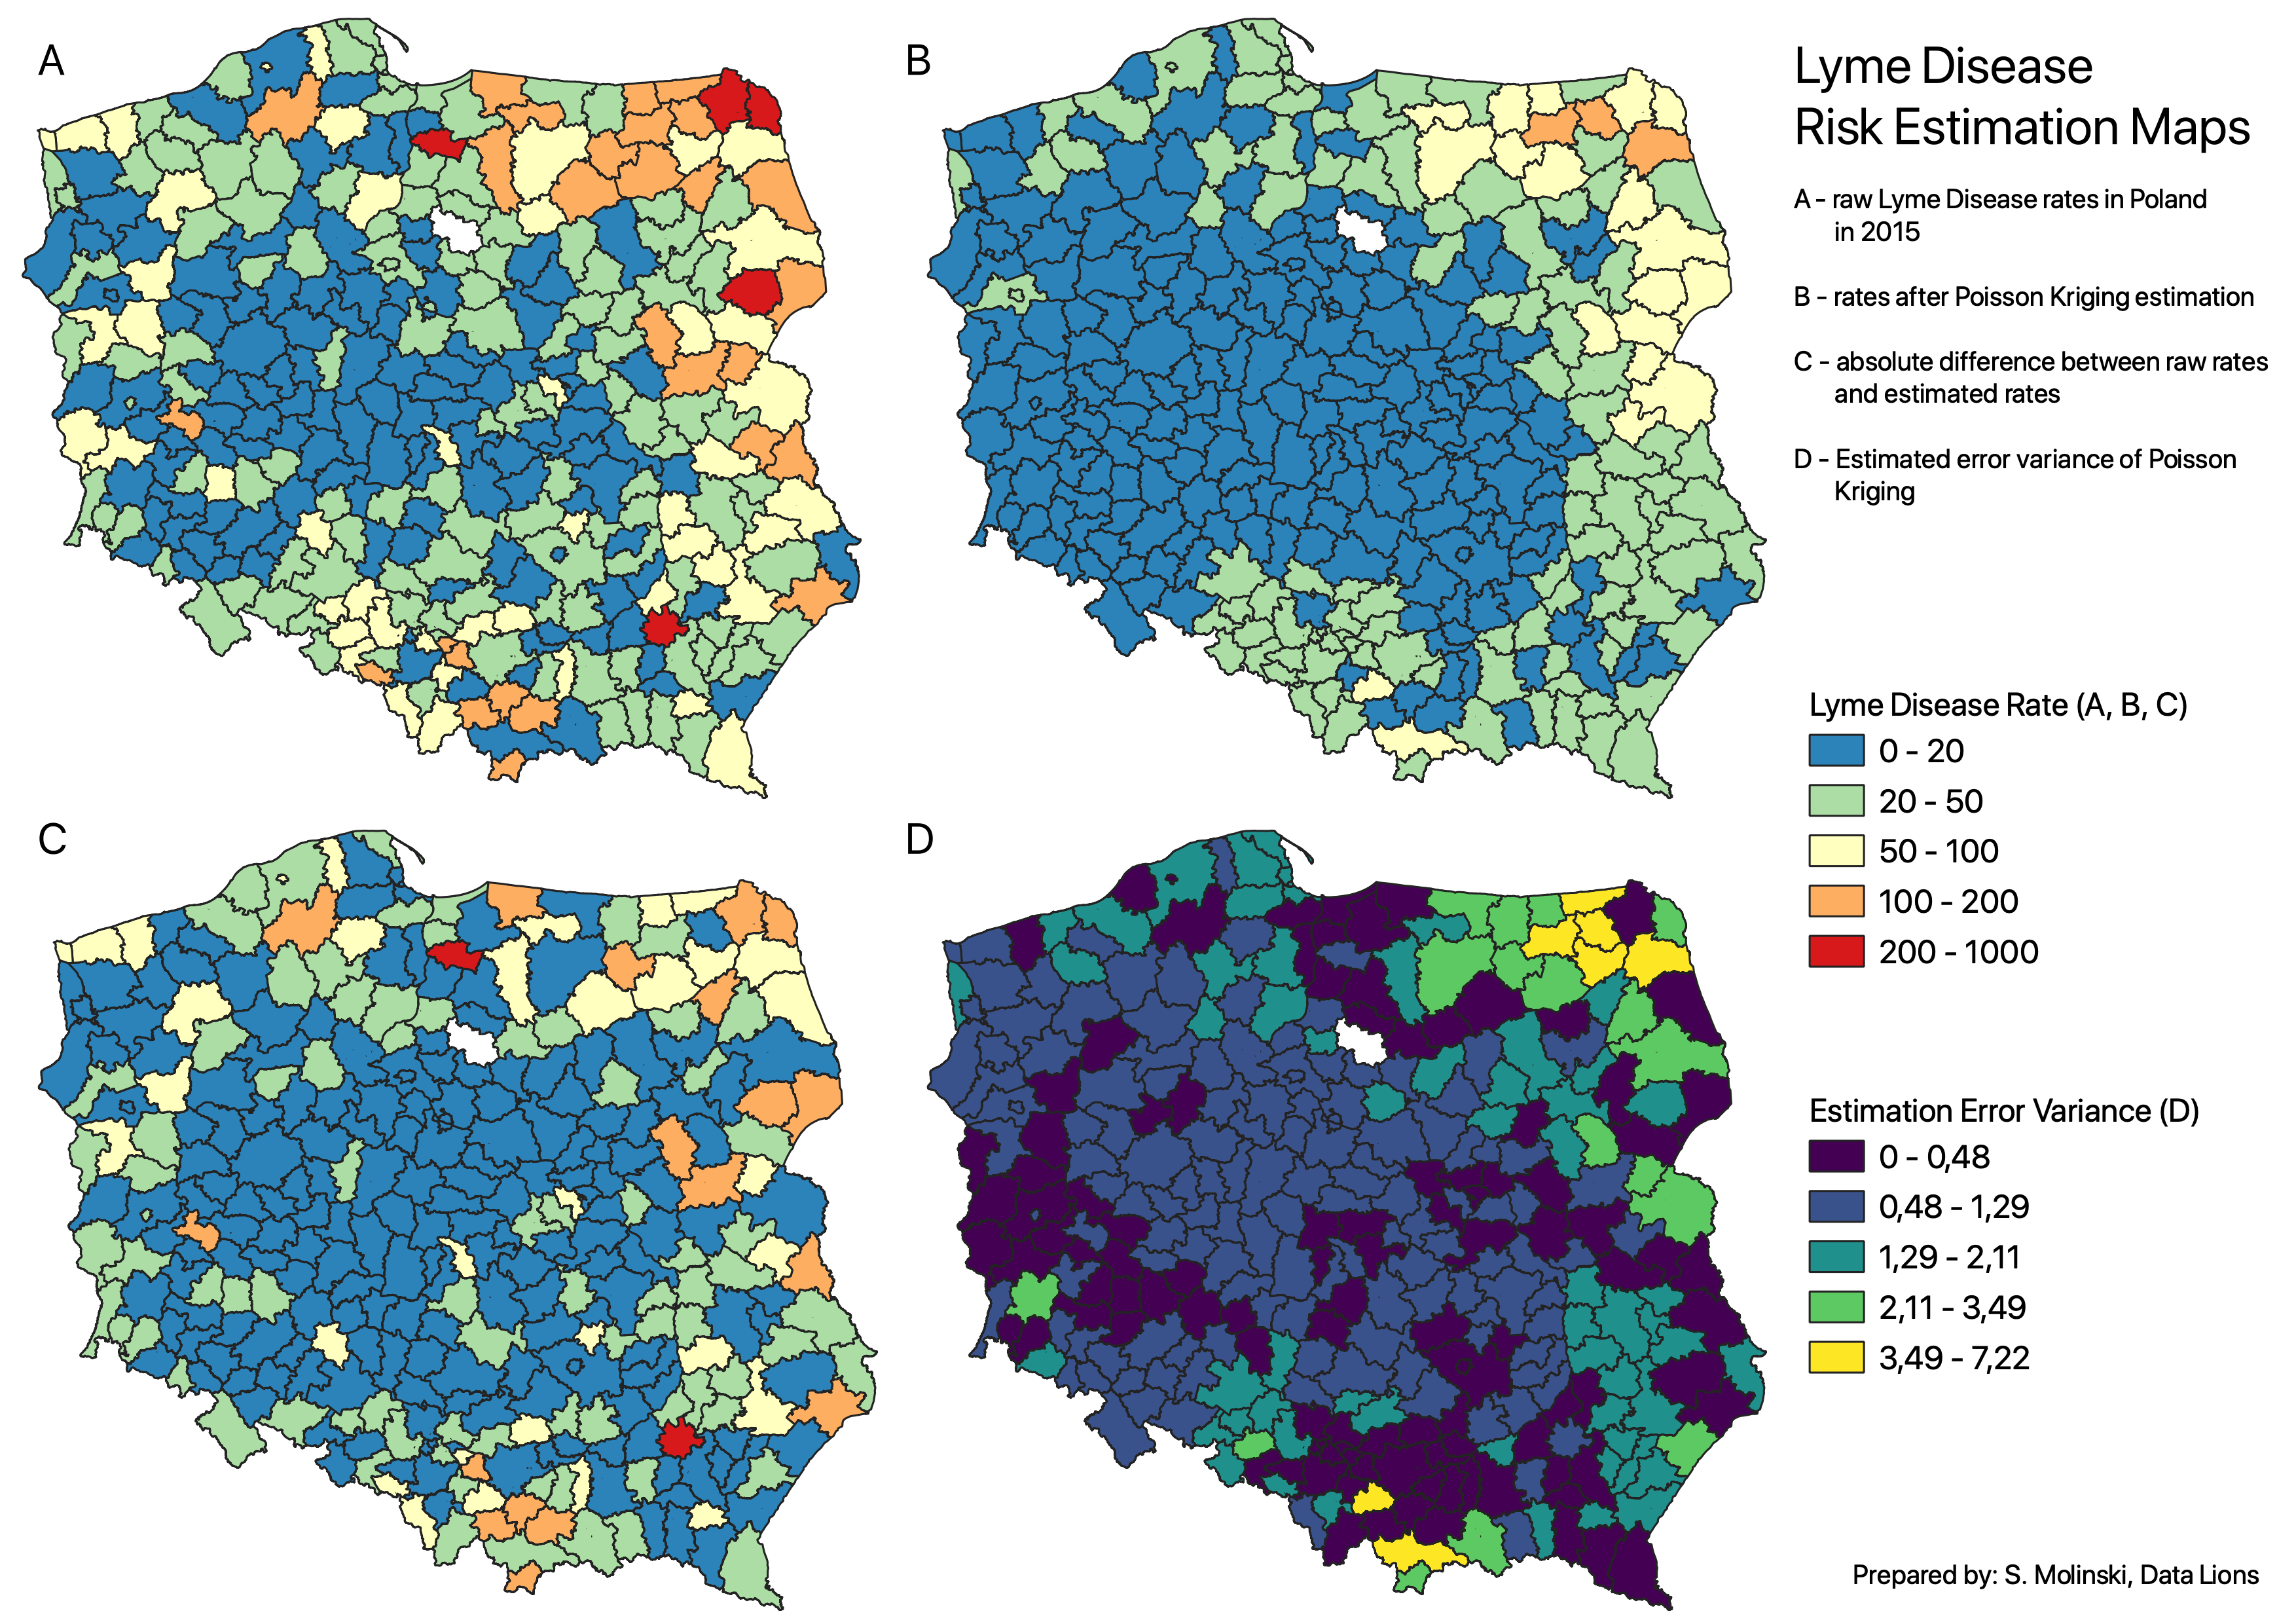 Maps of Lyme disease infection risk for Poland. Credits: S. Moliński/Data Lions